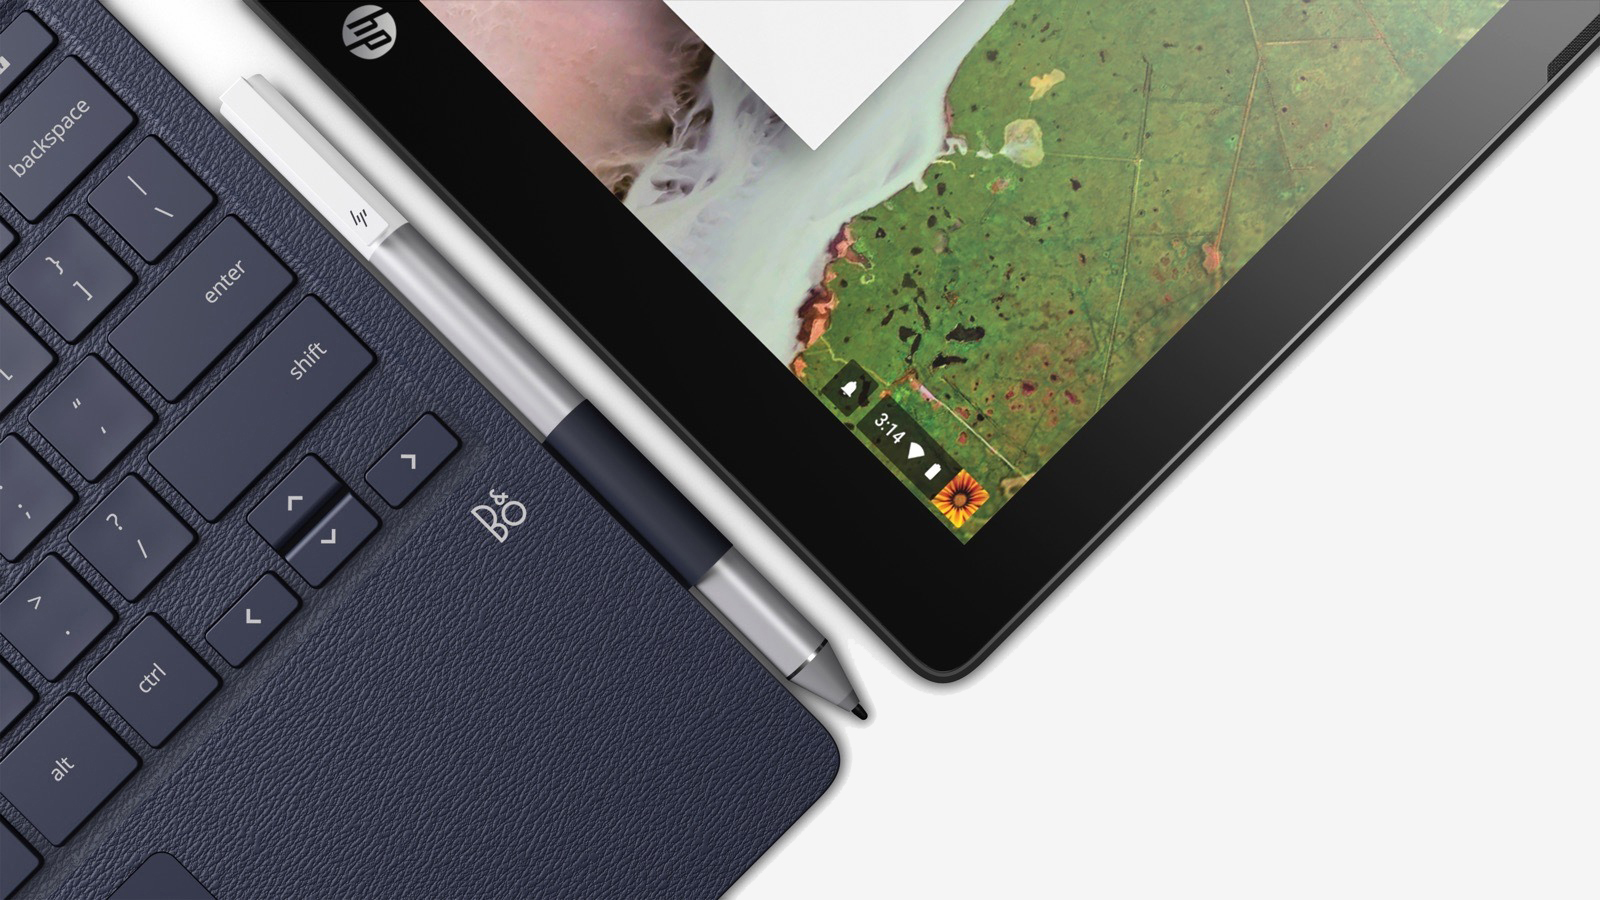 dd4dd766308 Acer late last month announced the world s first tablet running Chrome OS.  Today